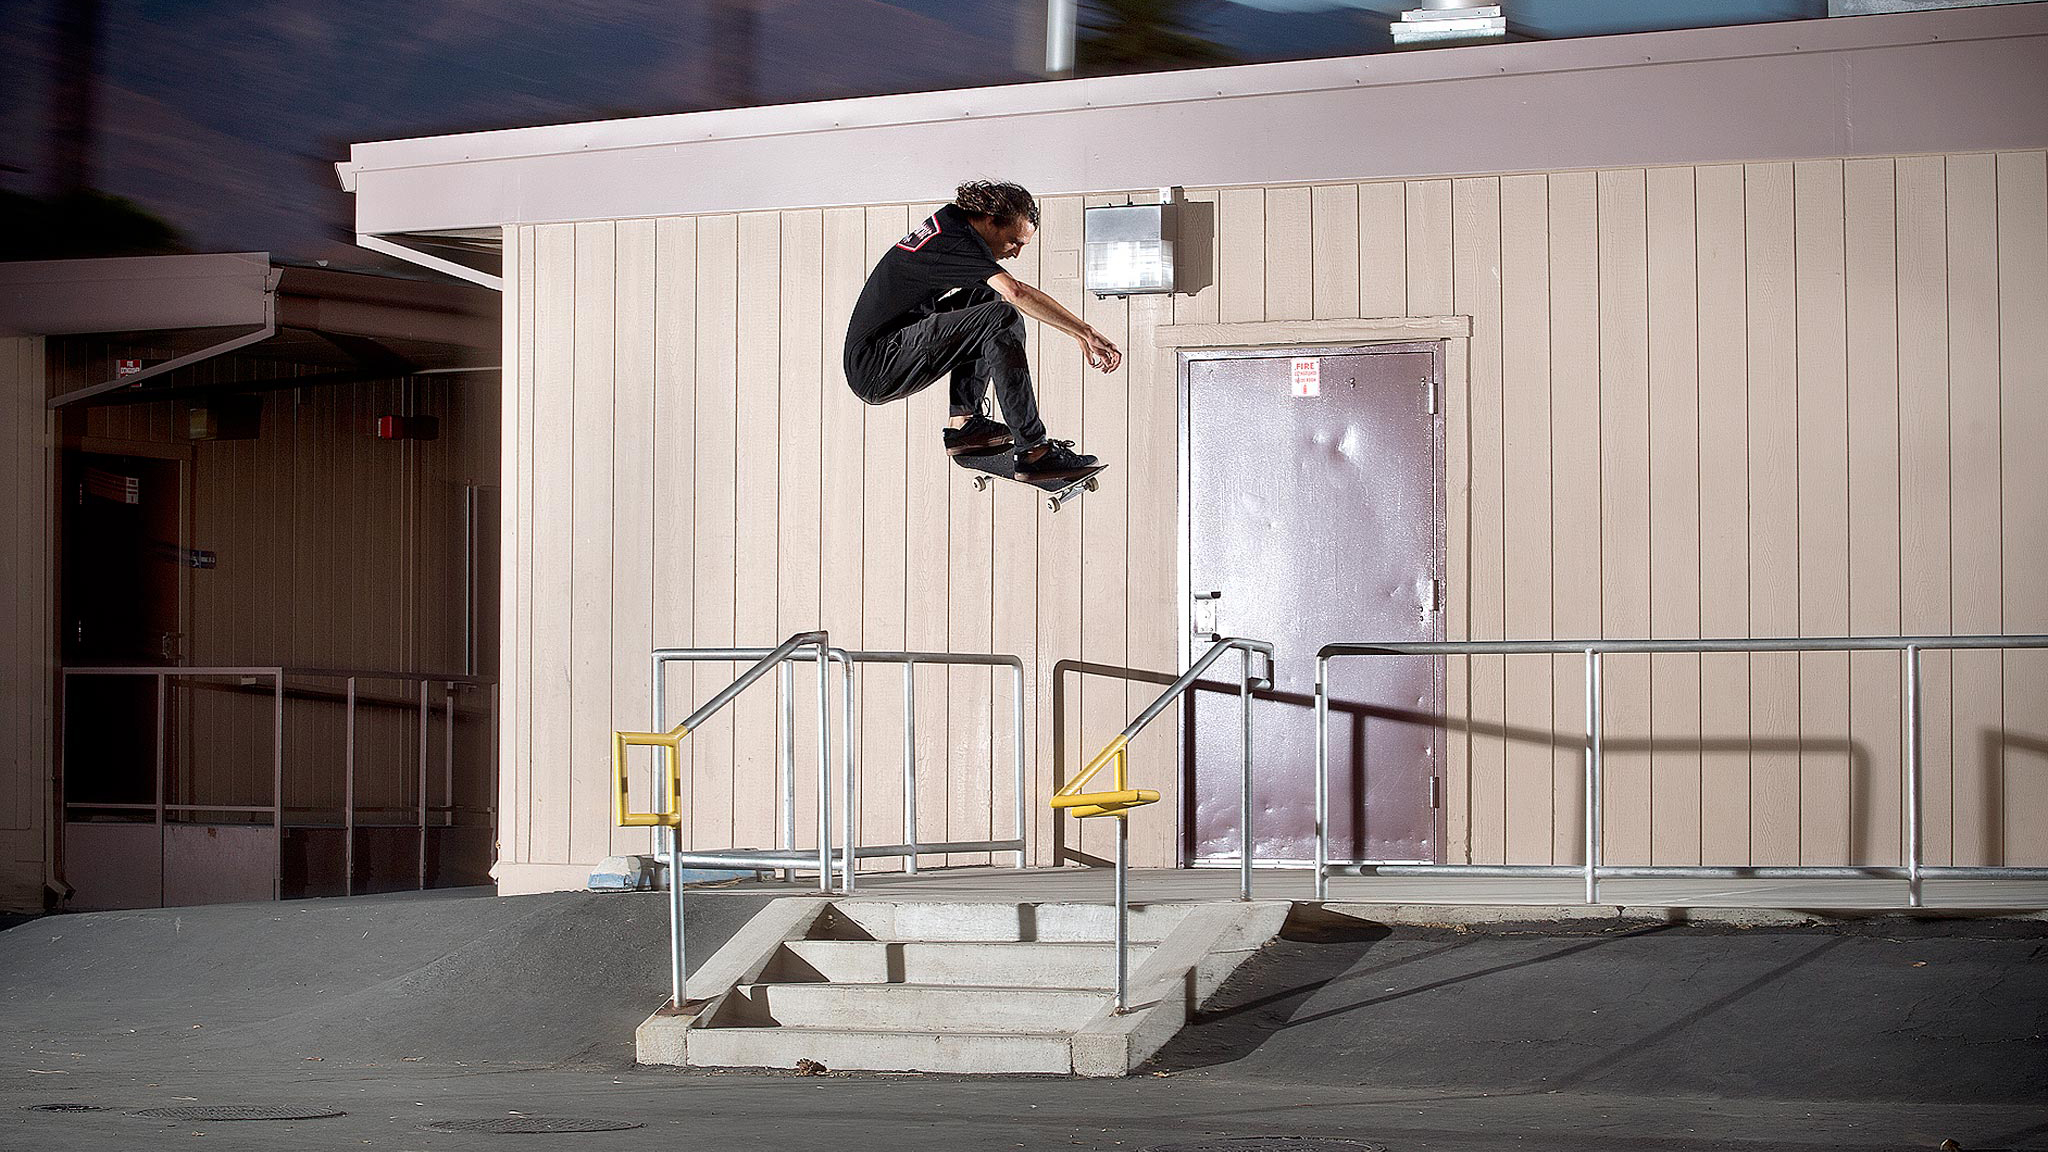 Evan Smith ollies over stairs and rails at an epic spot.